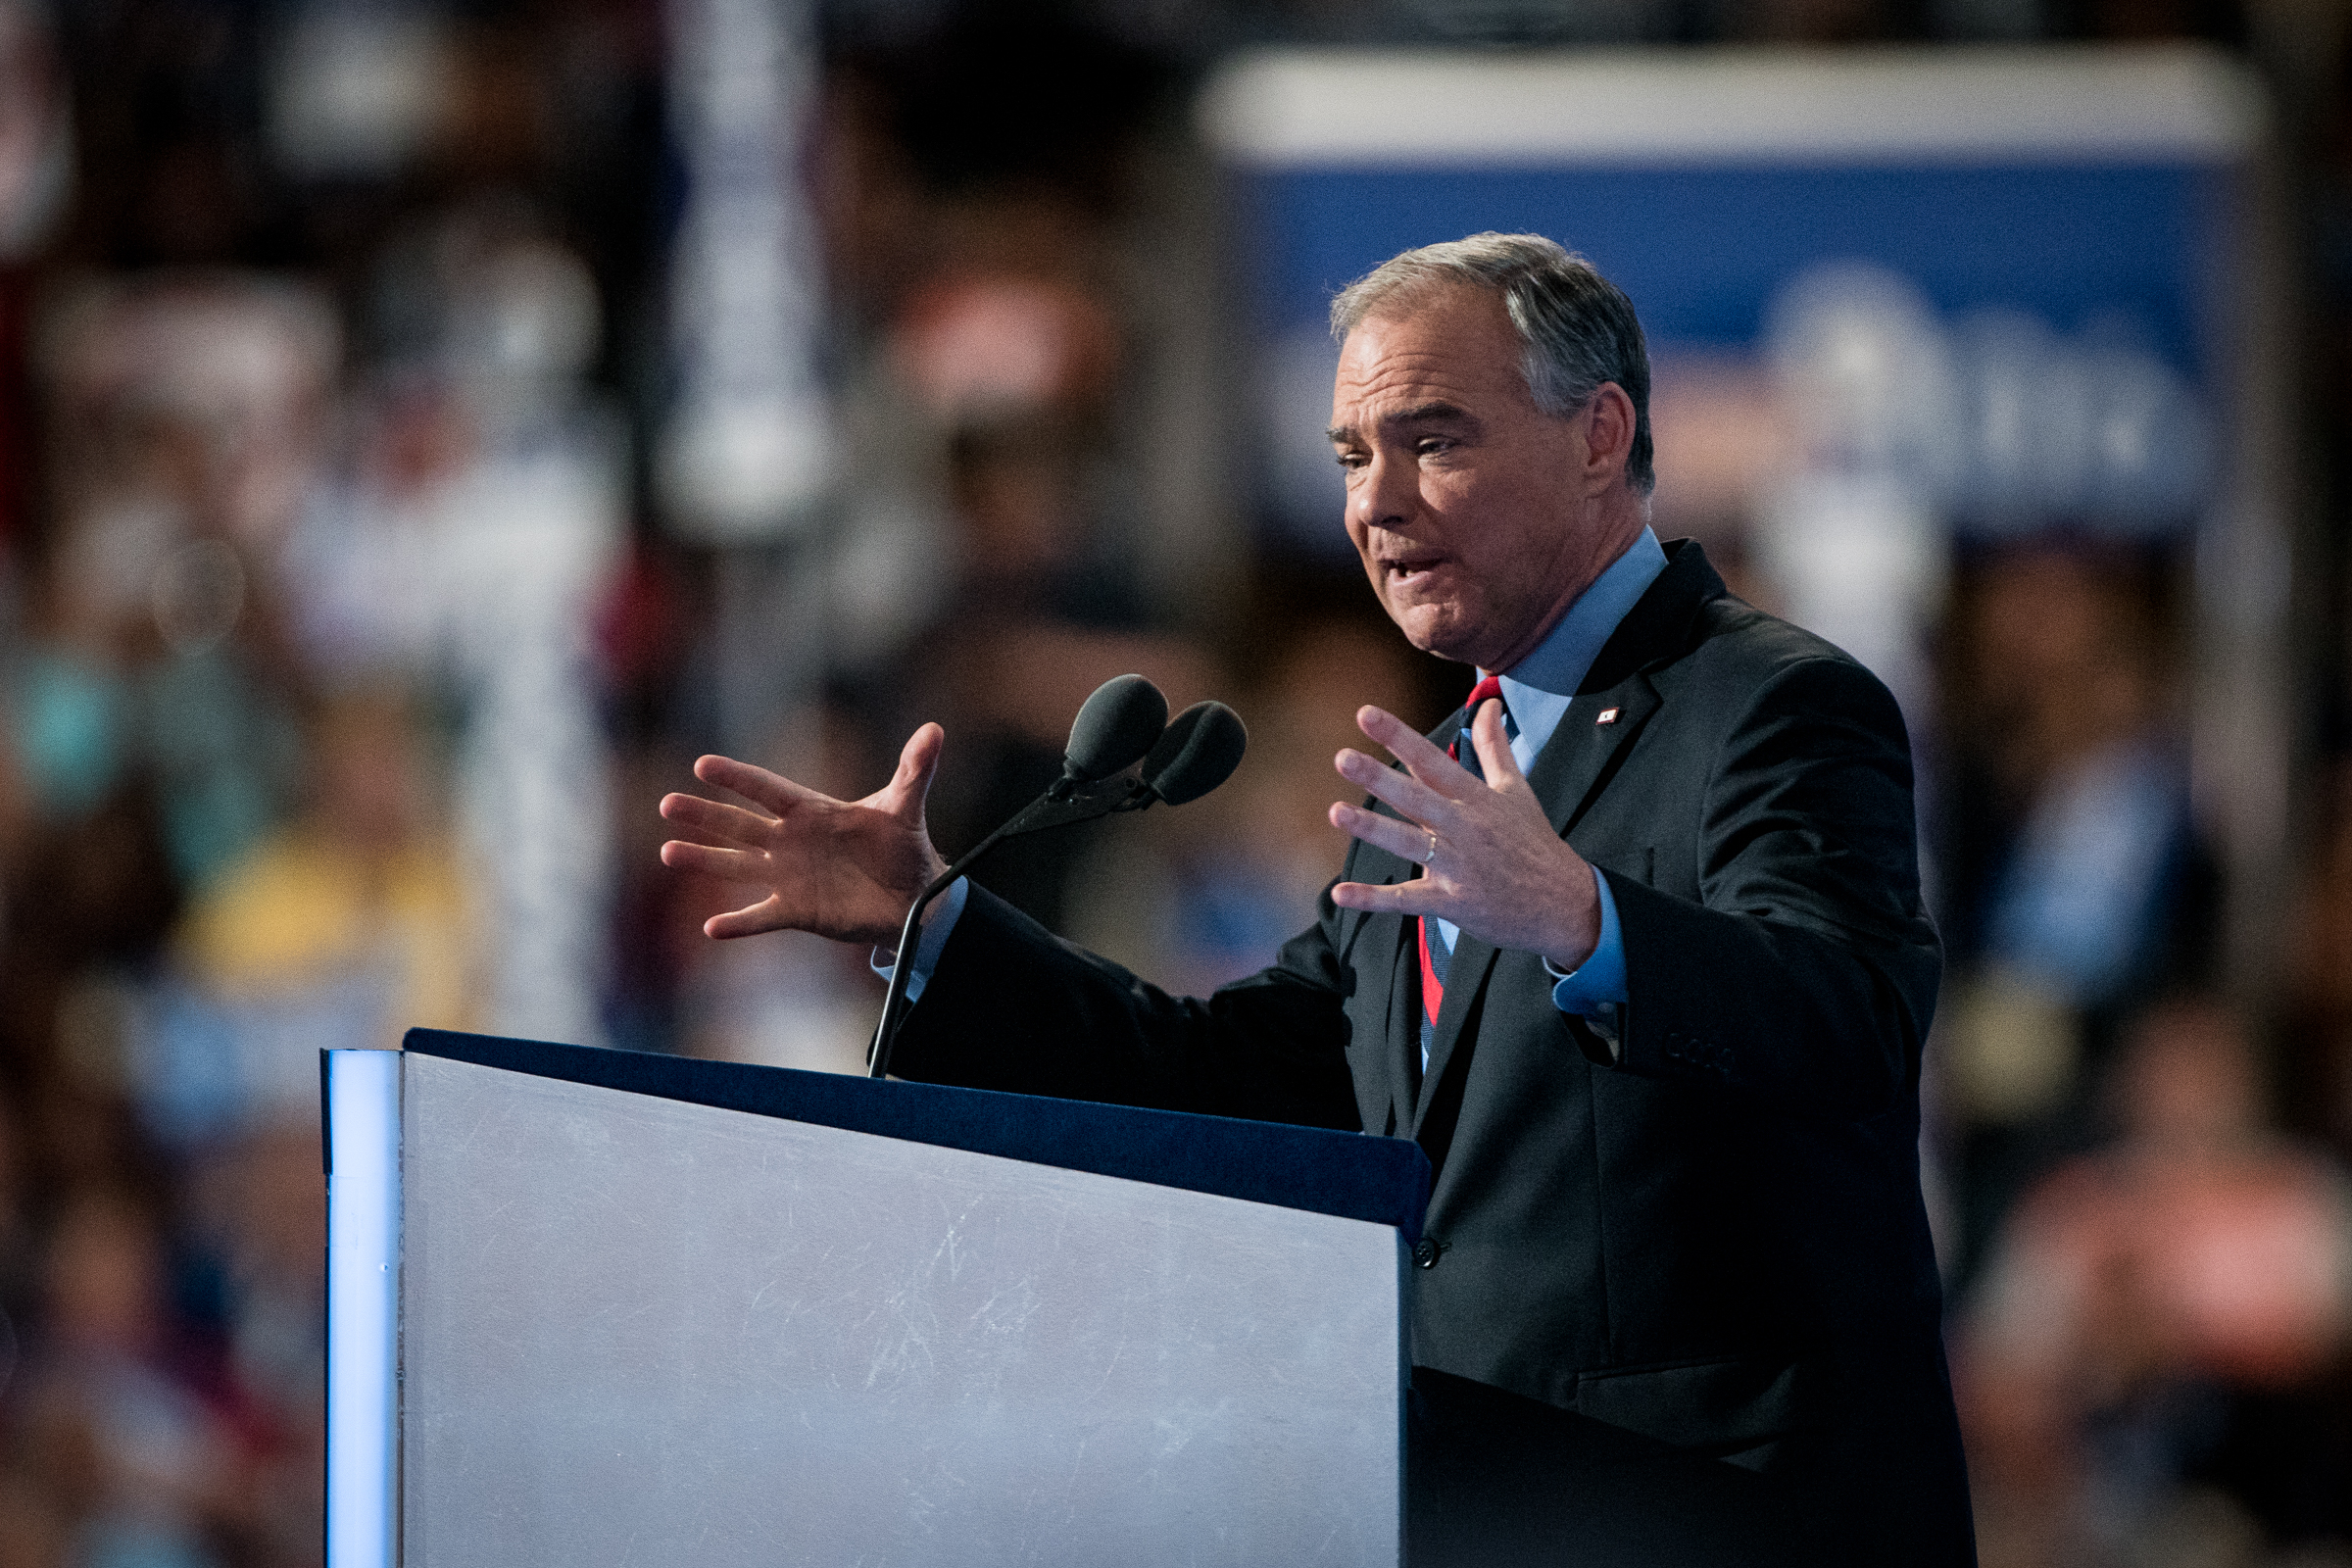 Democratic vice presidential candidate Senator Tim Kaine,D-VA,addresses the delegates at the Democratic National Convention inside the Wells Fargo Center in Philadelphia on Wednesday July 27, 2016. (Michael Ares /Philadelphia Inquirer)